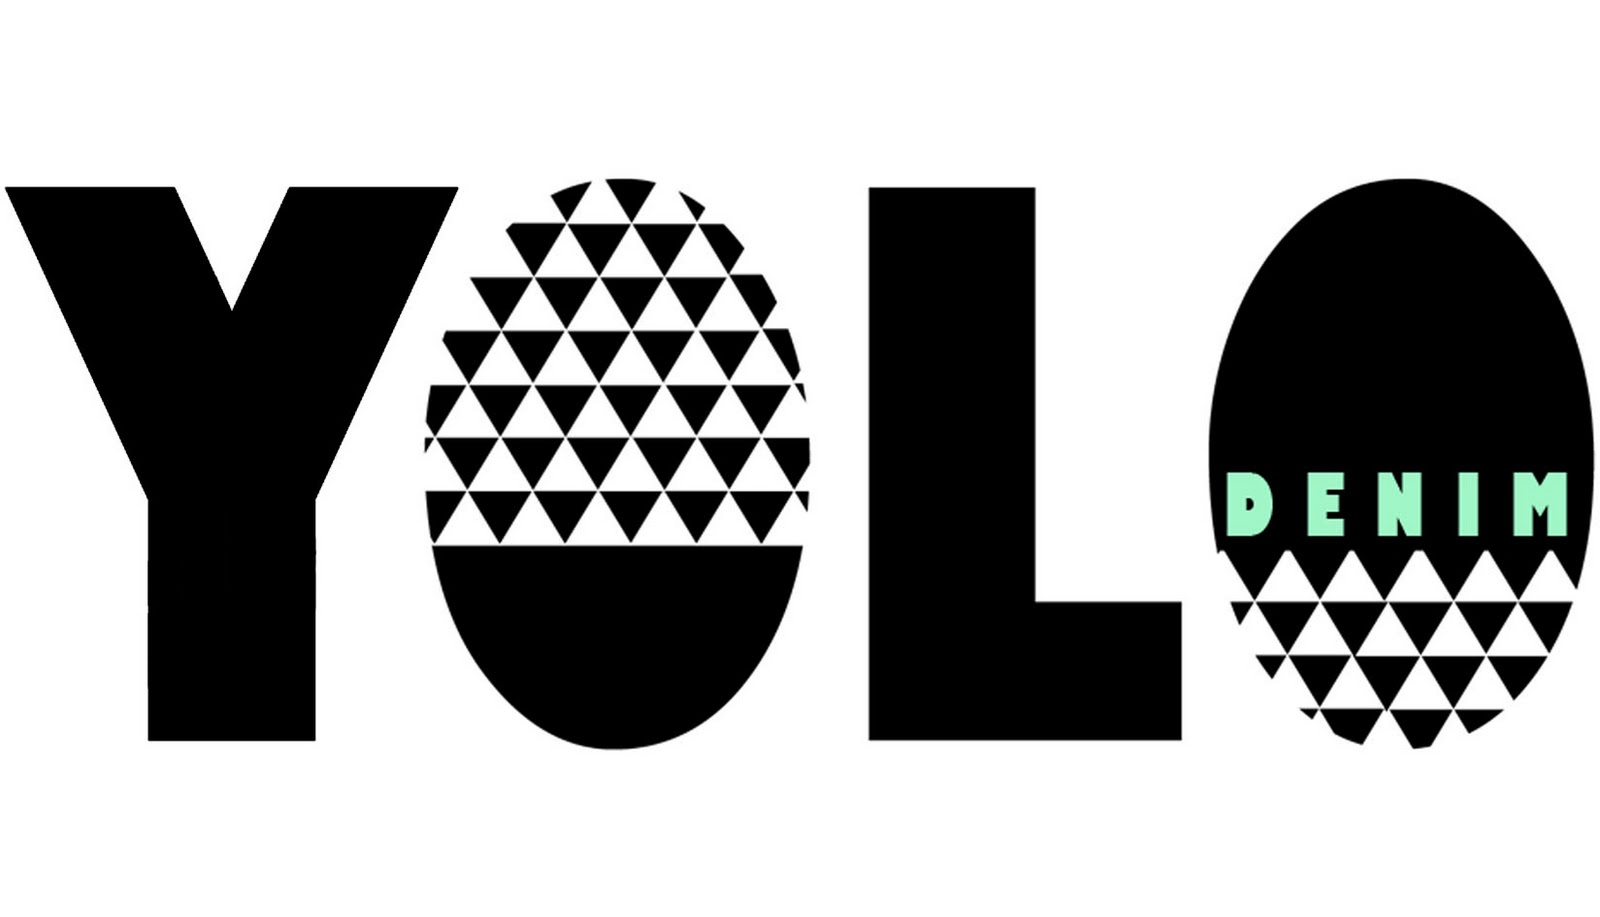 trololo blogg yolo wallpaper for iphone